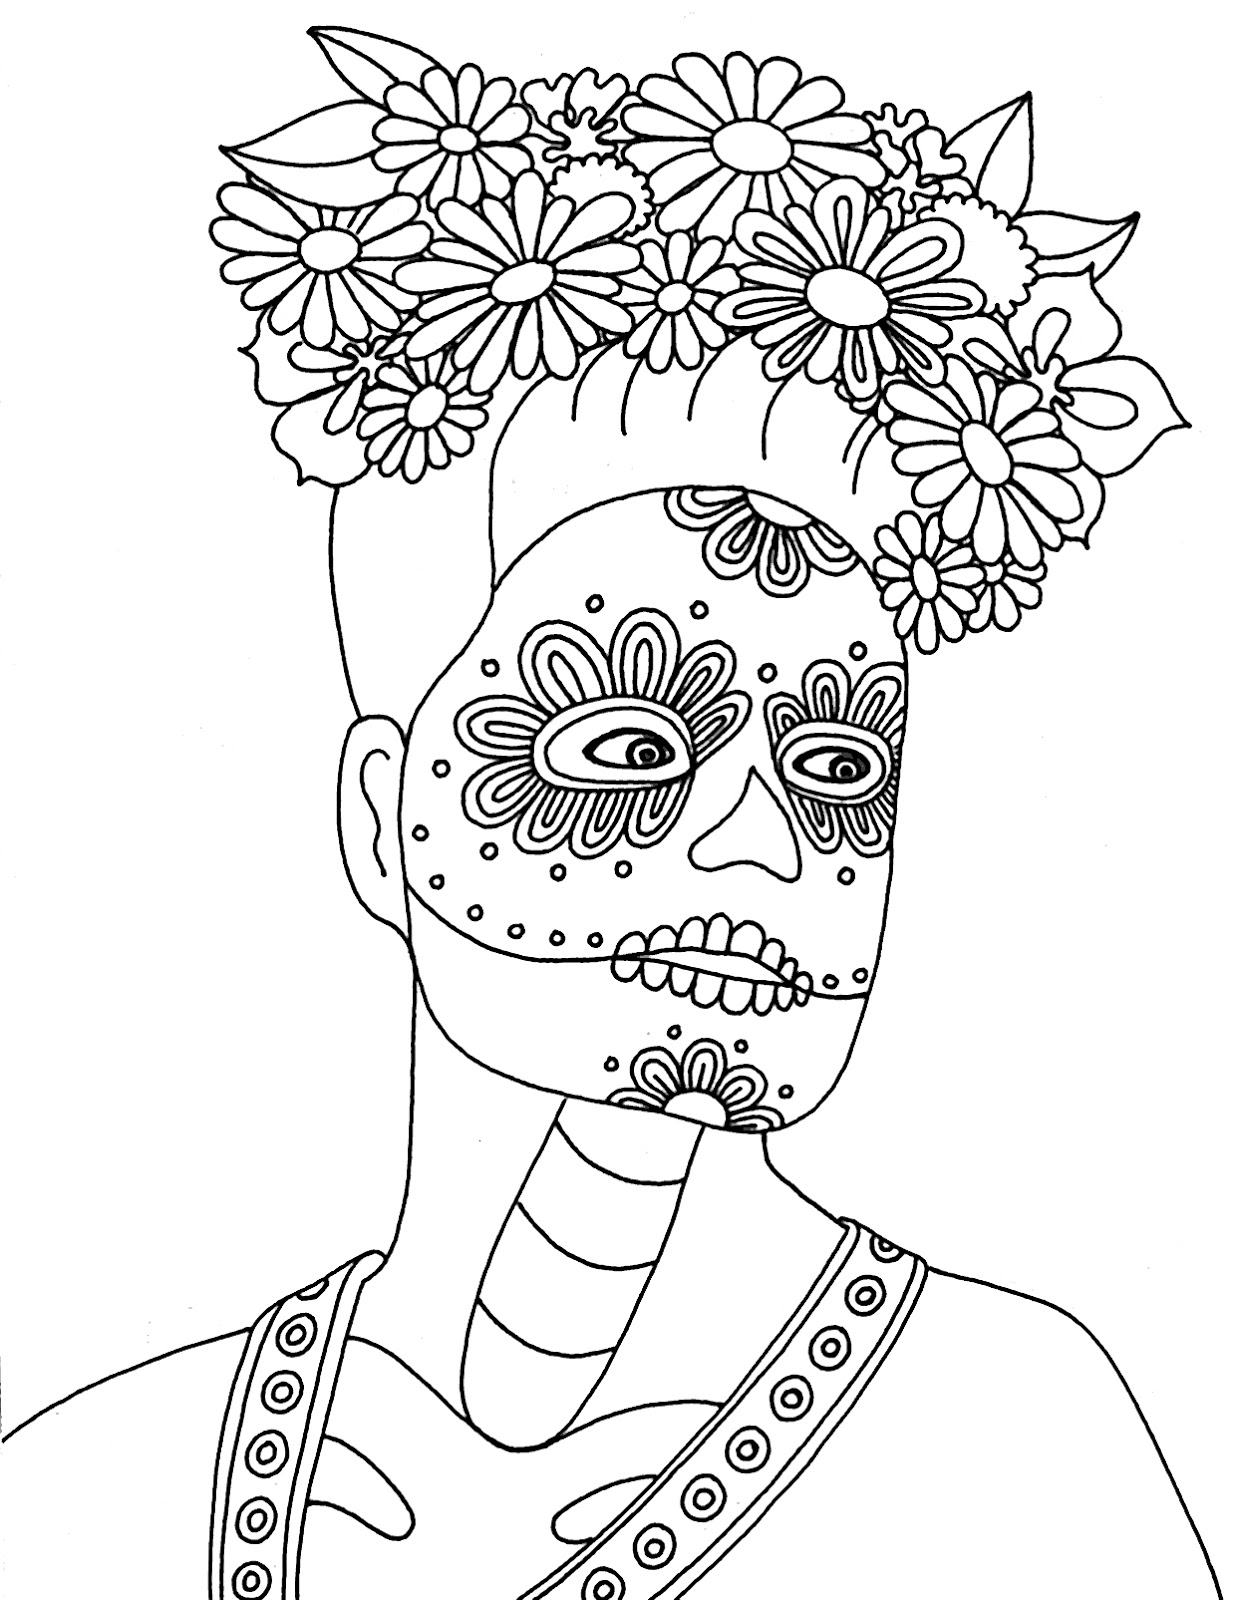 coloring pages of people - photo#42